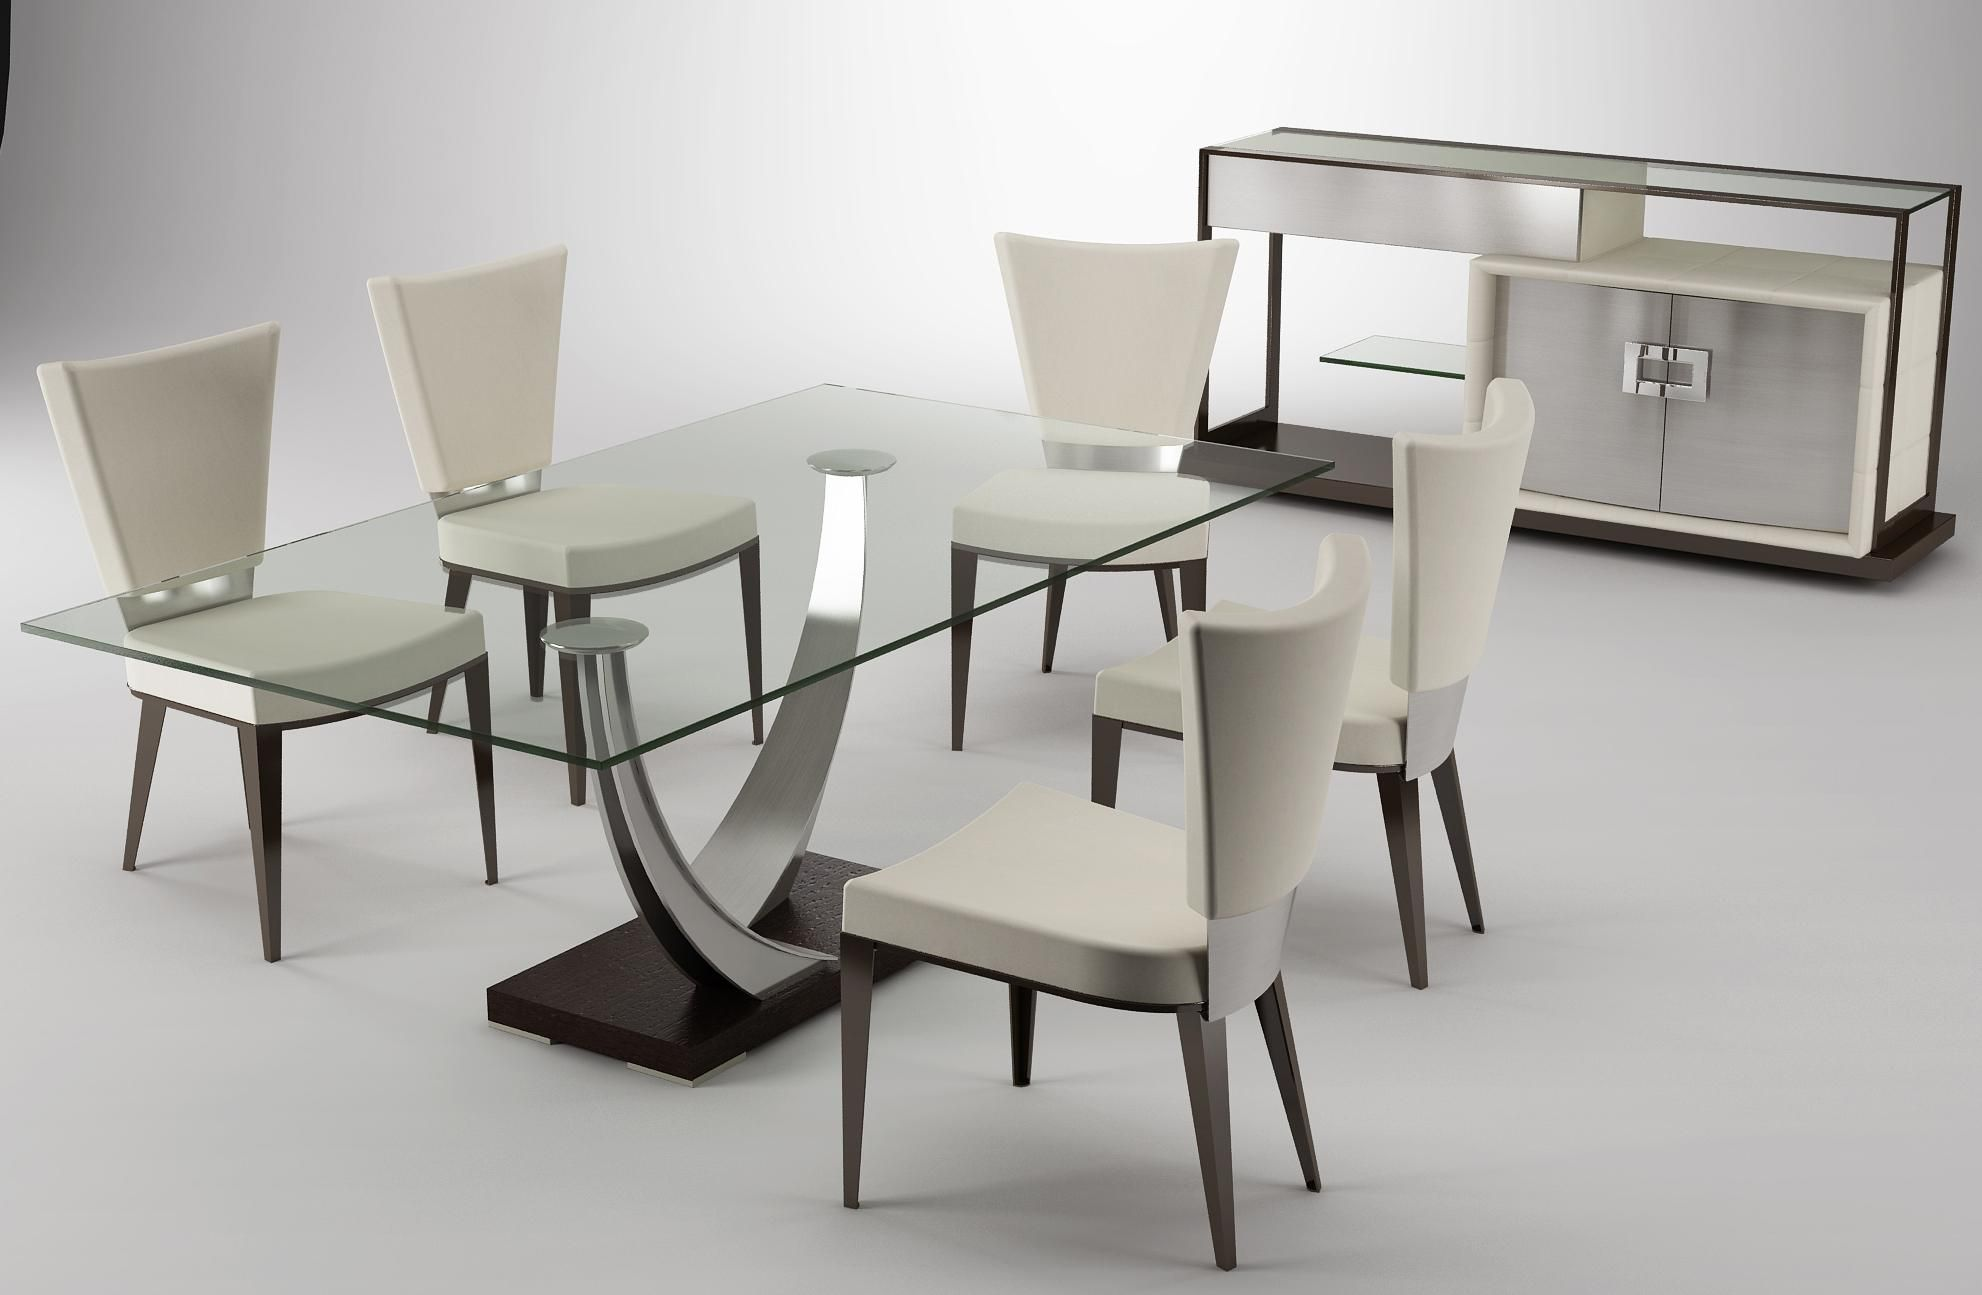 Modern Dining Tables amazing modern stylish dining room table set designs elite tangent